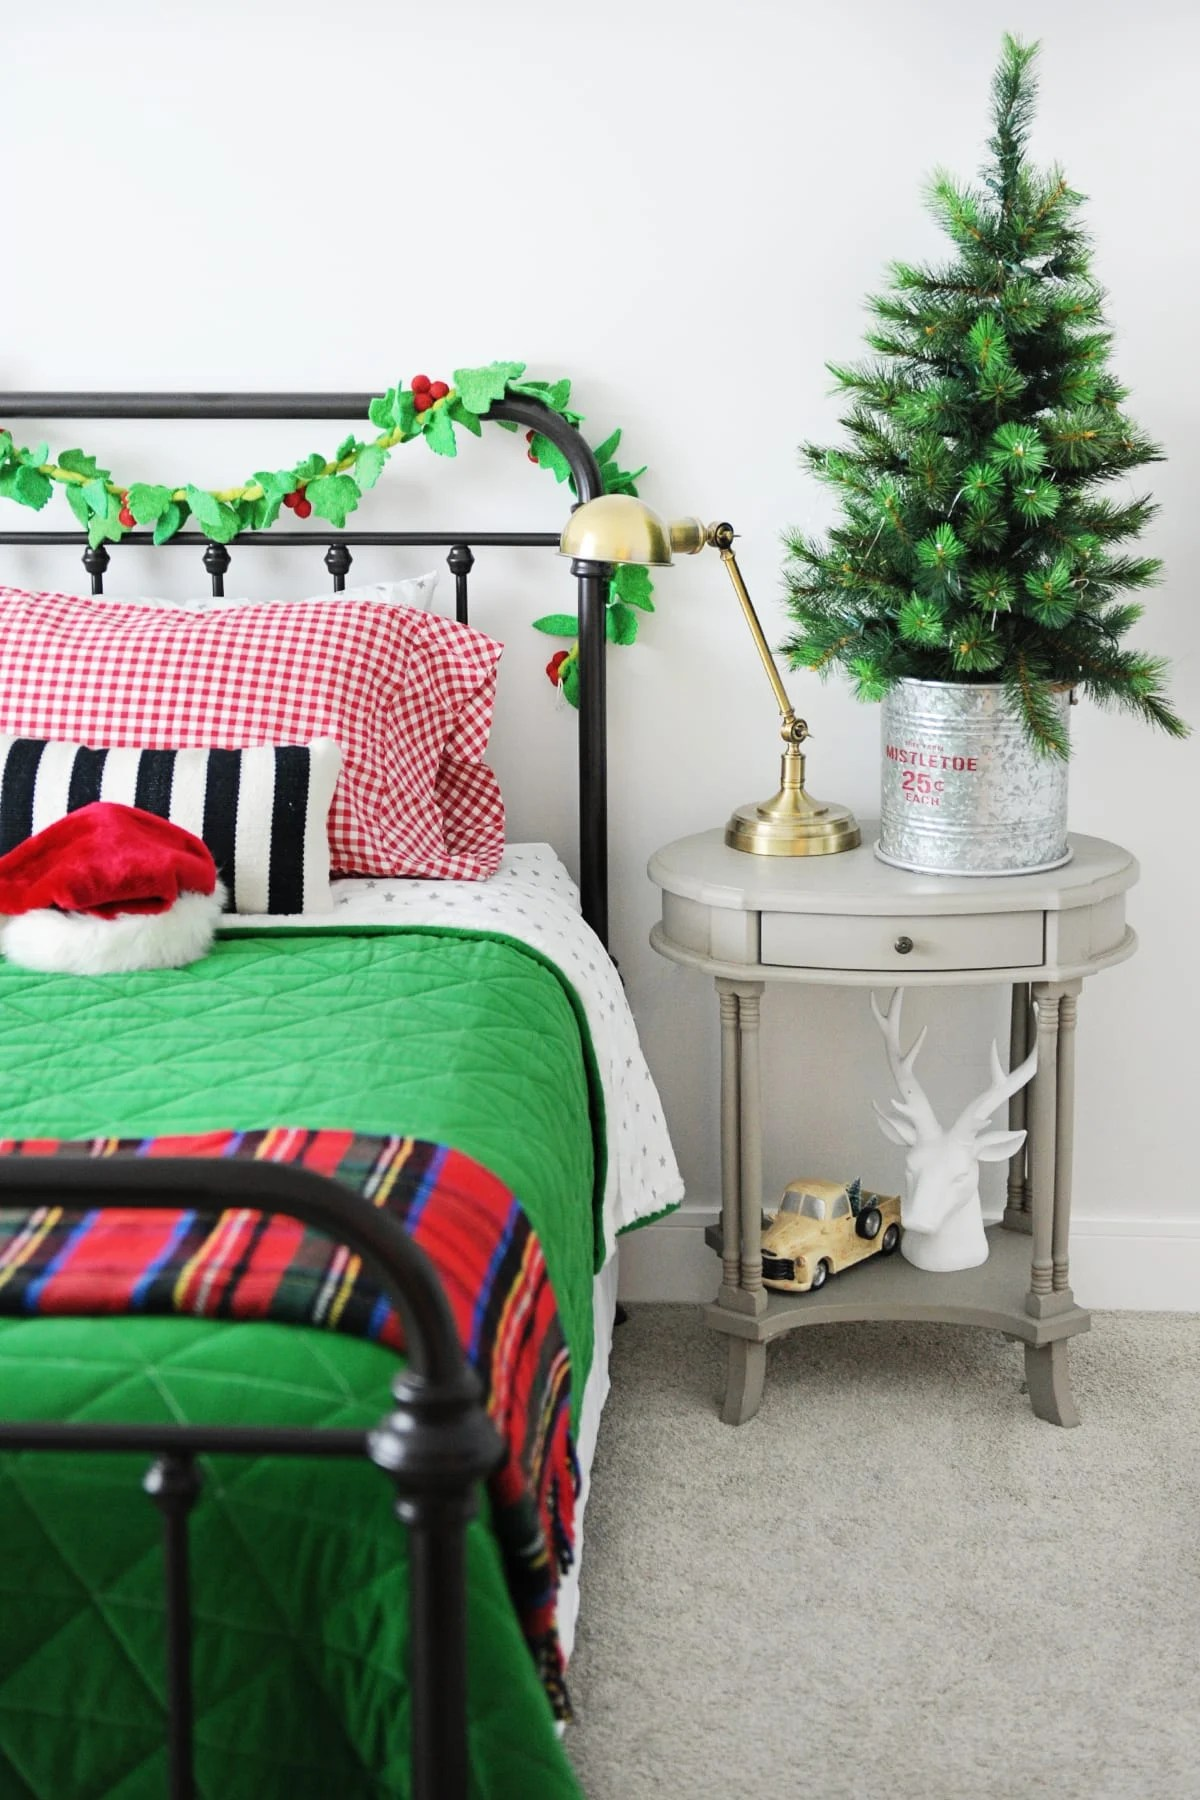 Christmas kids bedroom decorating ideas